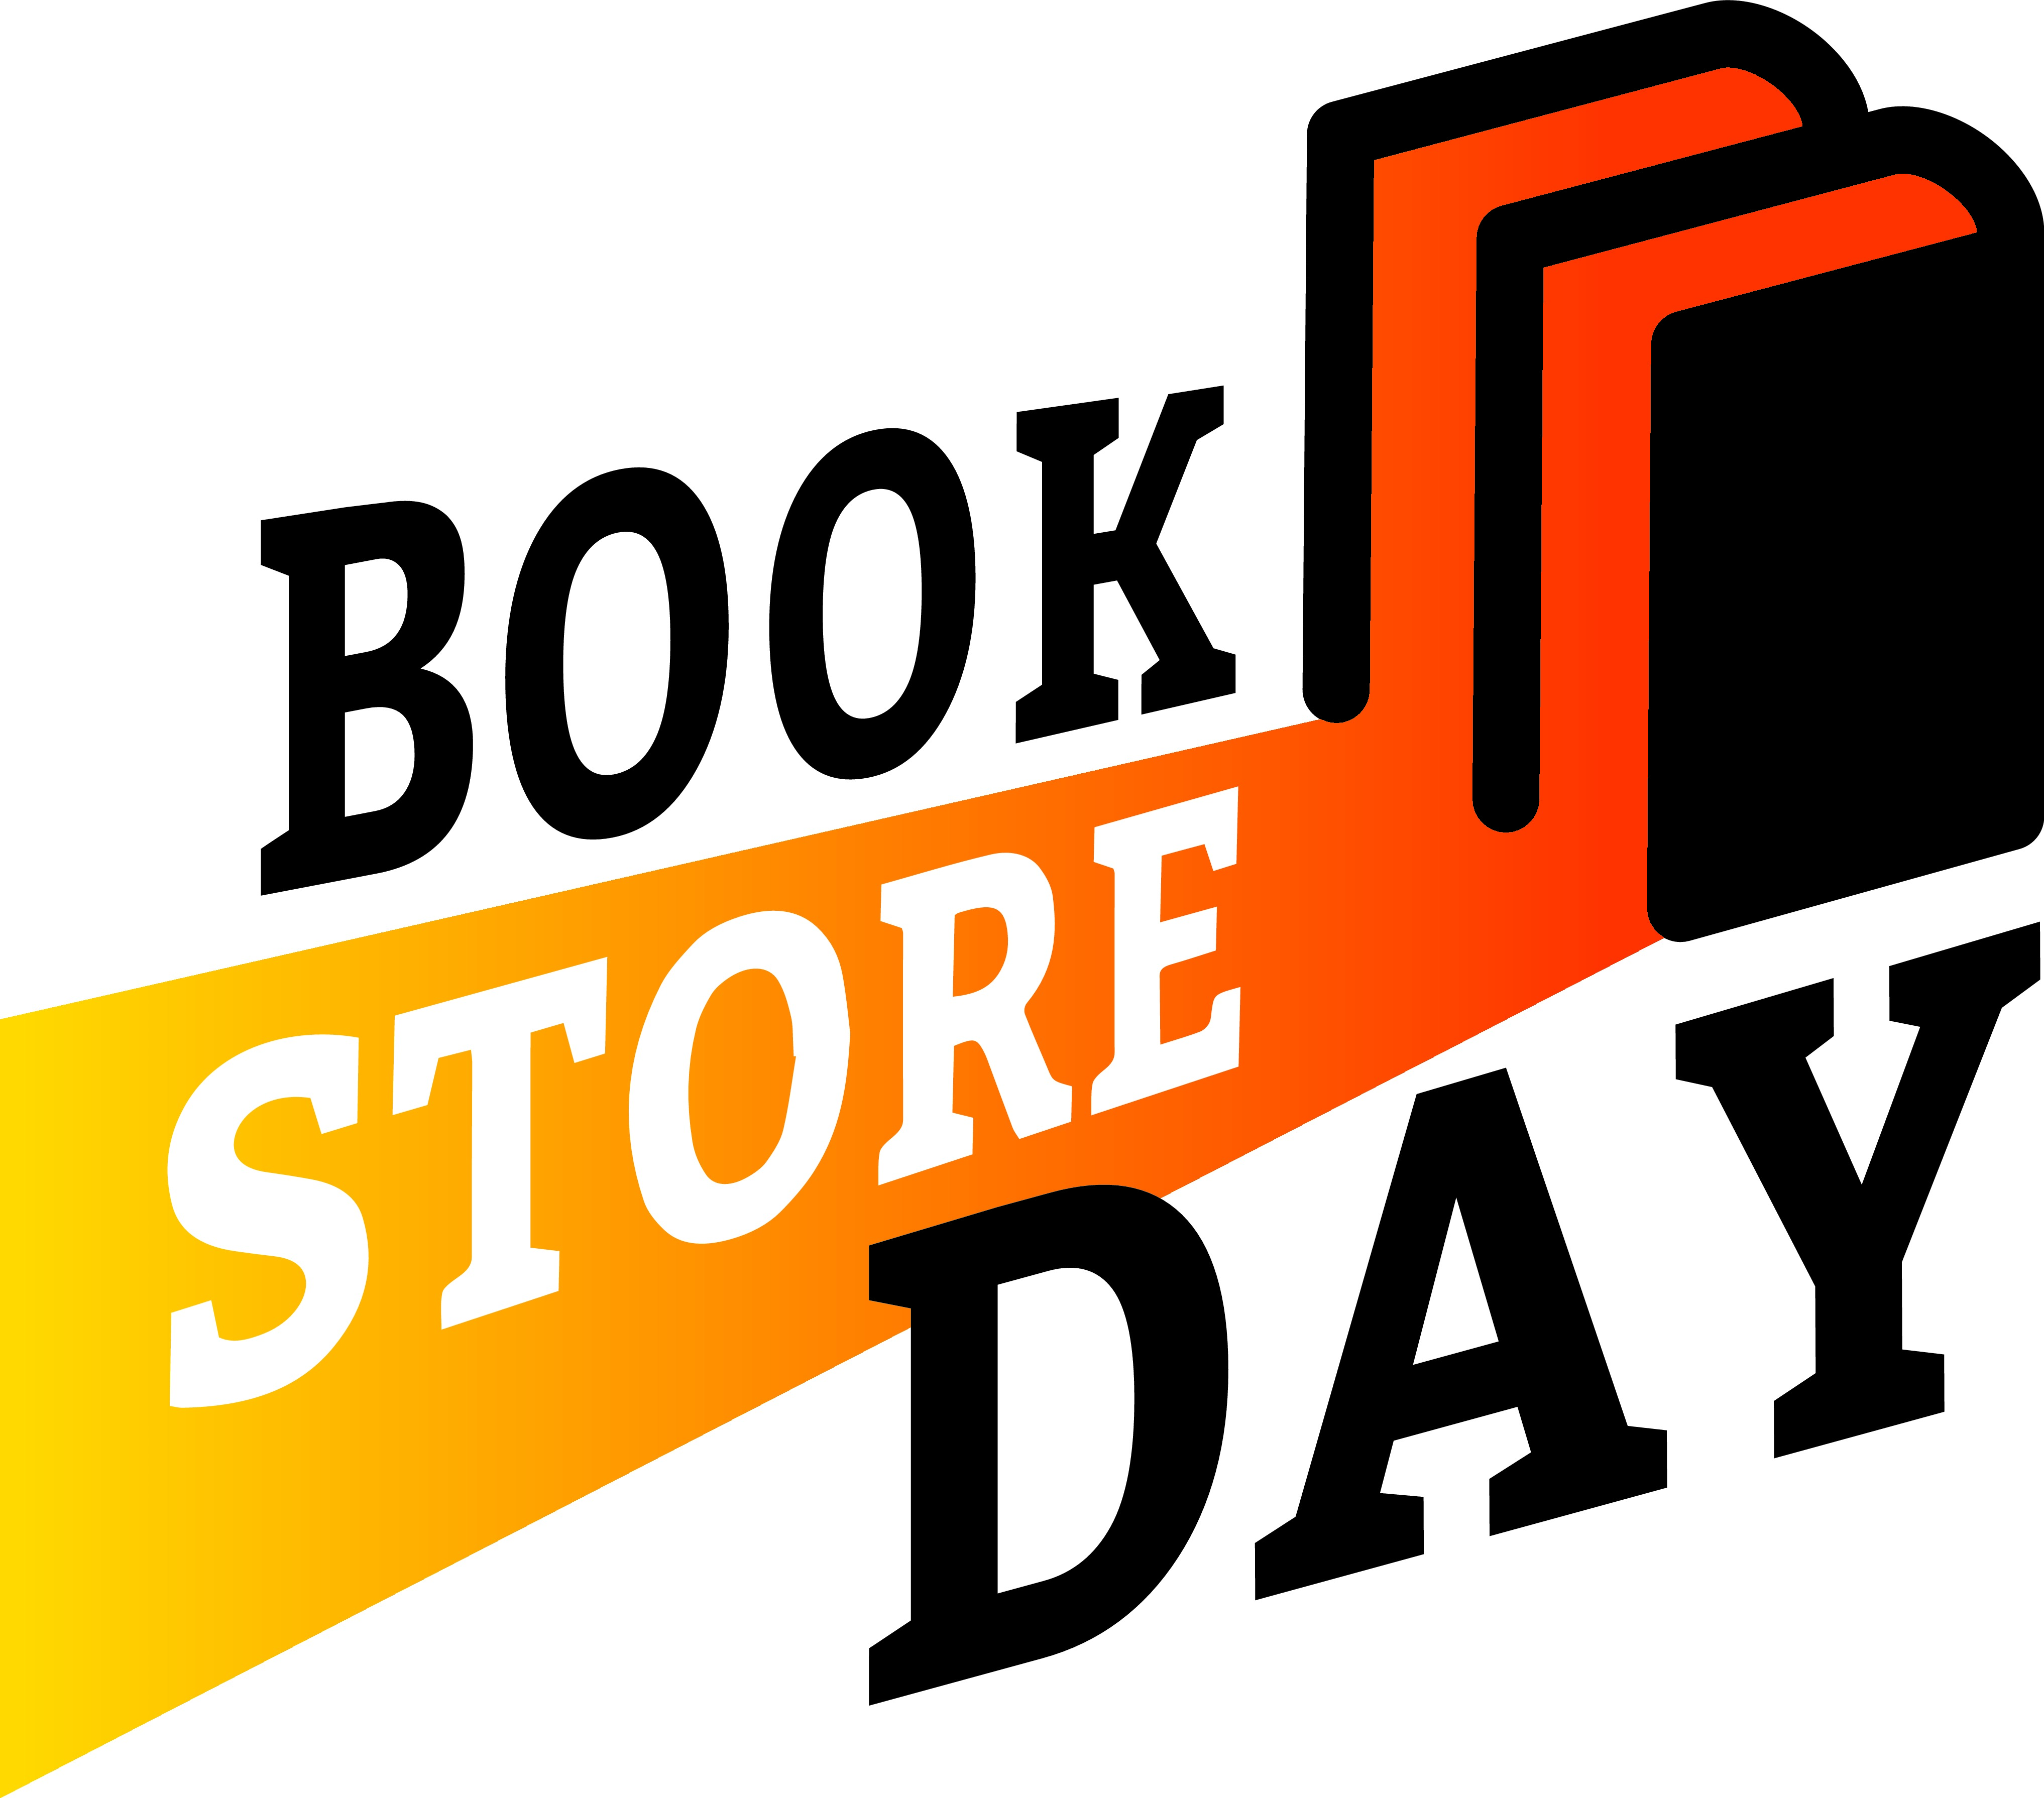 Bookstoreday 2018